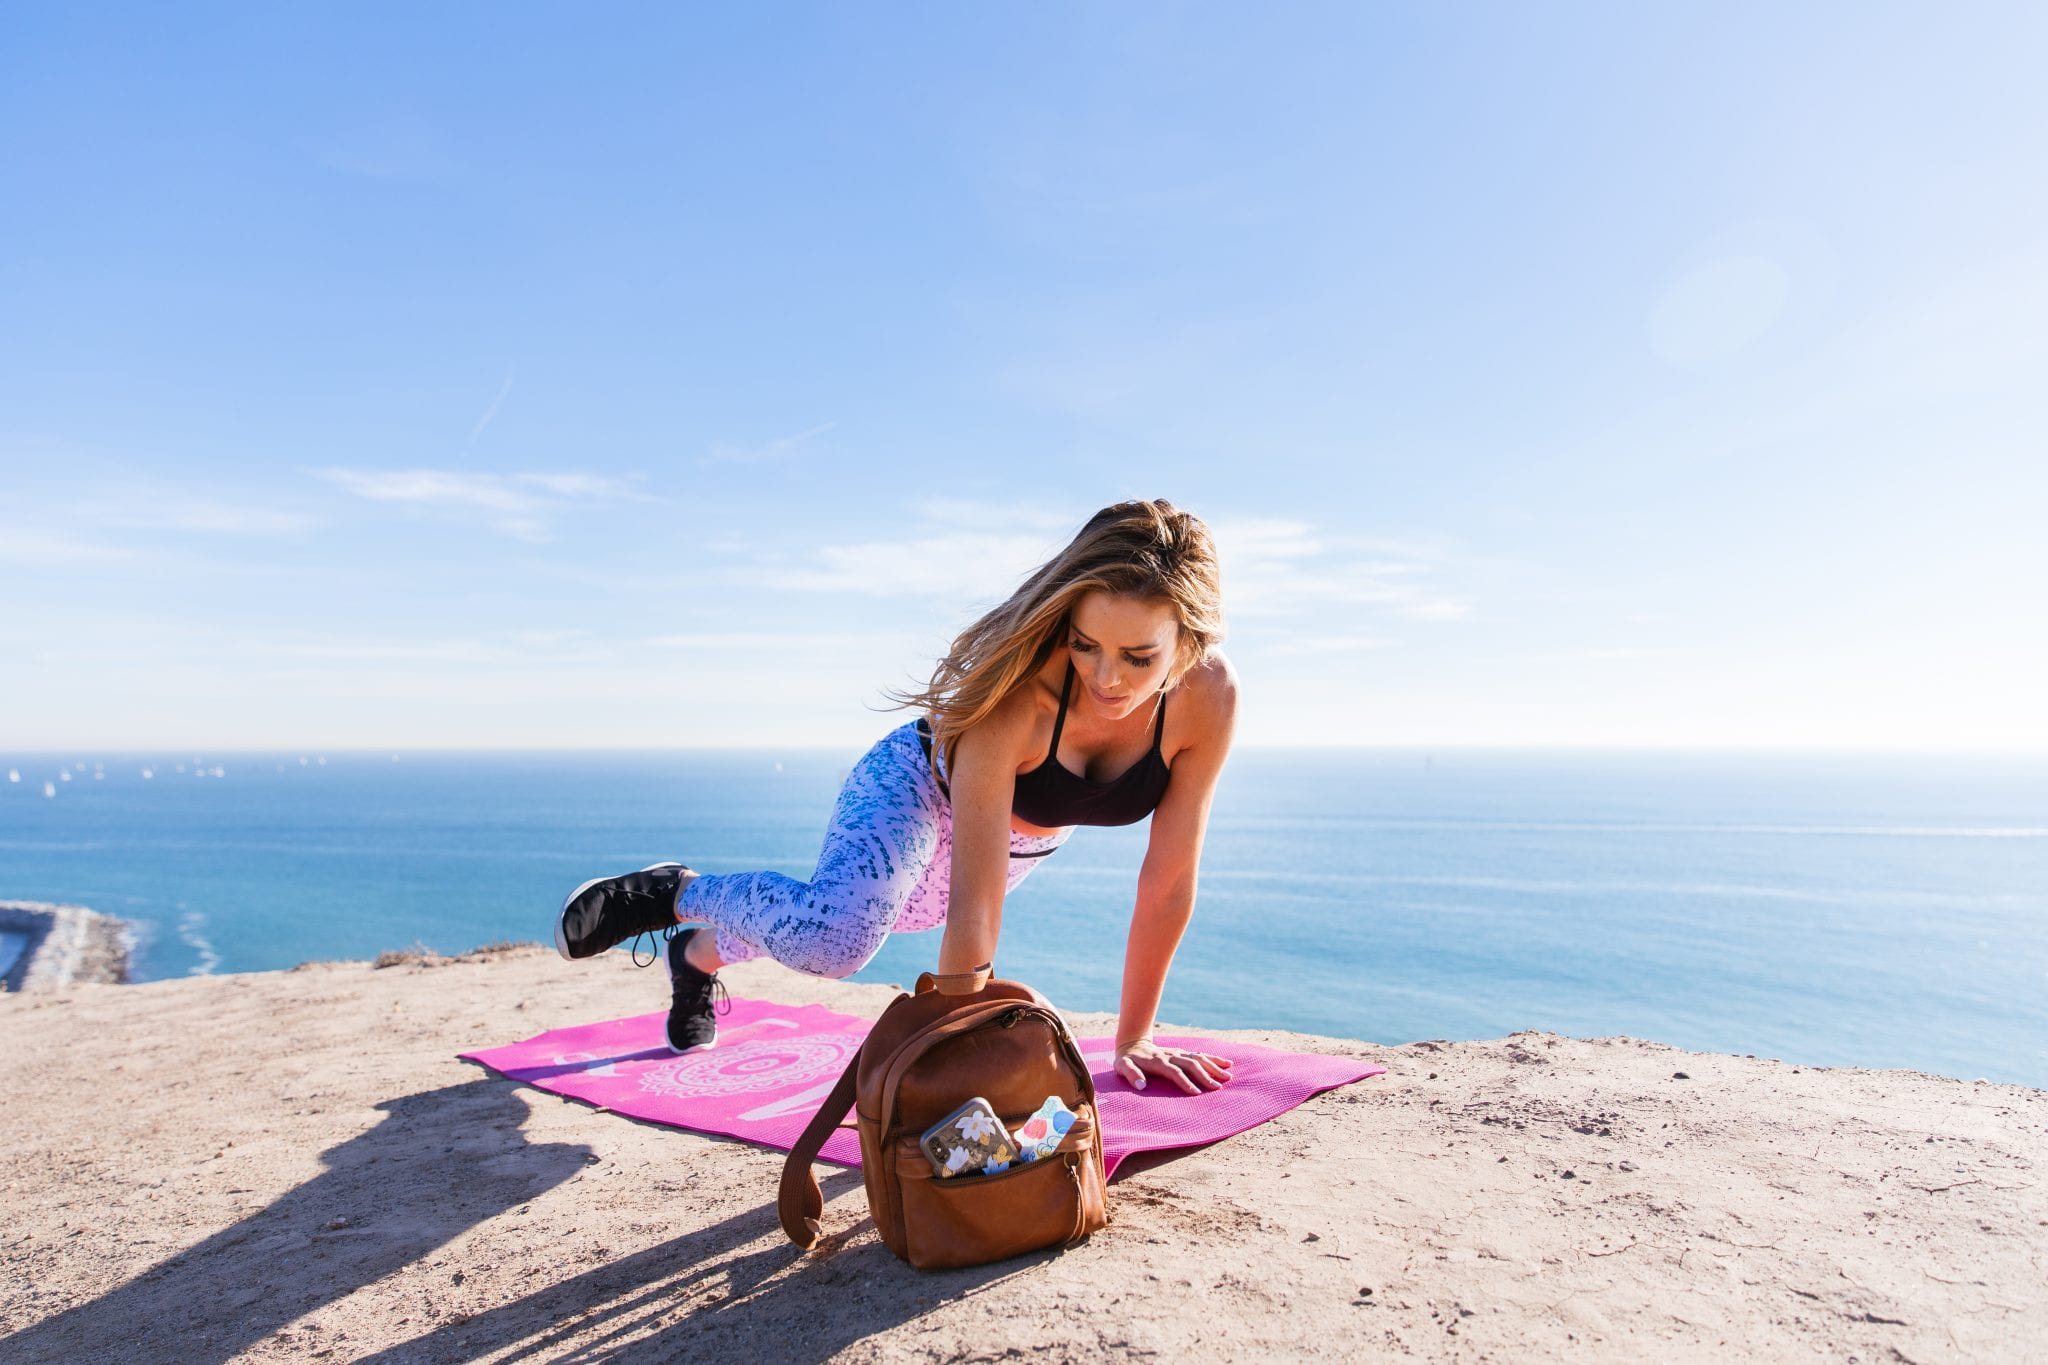 Should You Workout During Your Period?, tampax, tampax pear, period, working out on period, exercise on period, fitness, women's fitness, daily workouts